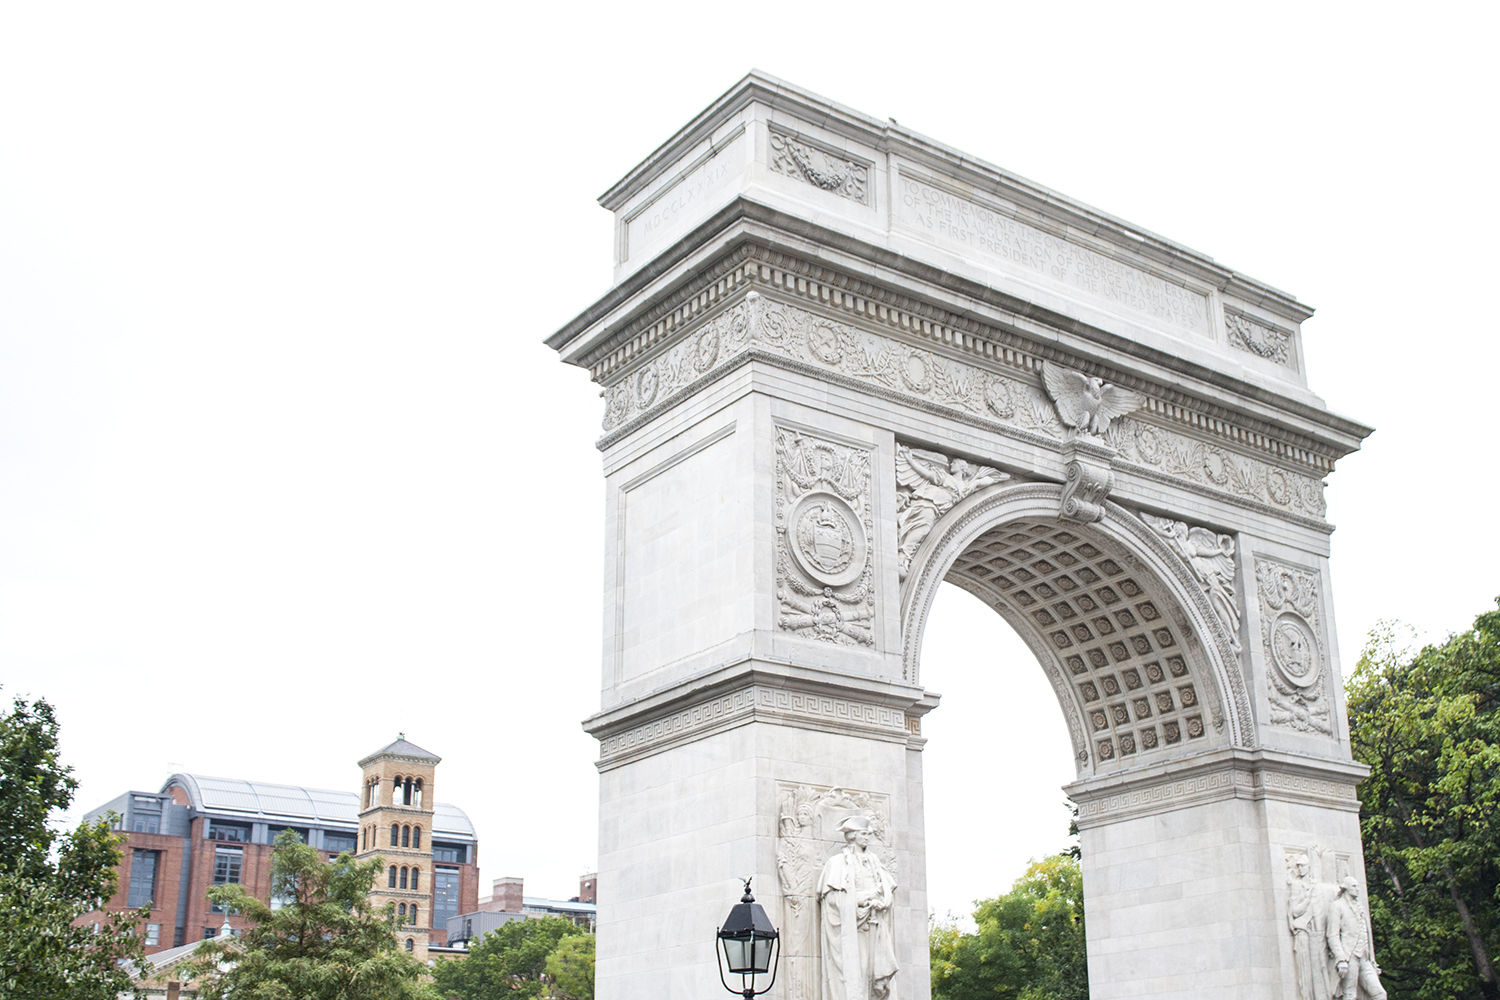 08nyc-newyork-washingtonsquarepark-travel-diary-architecture-style